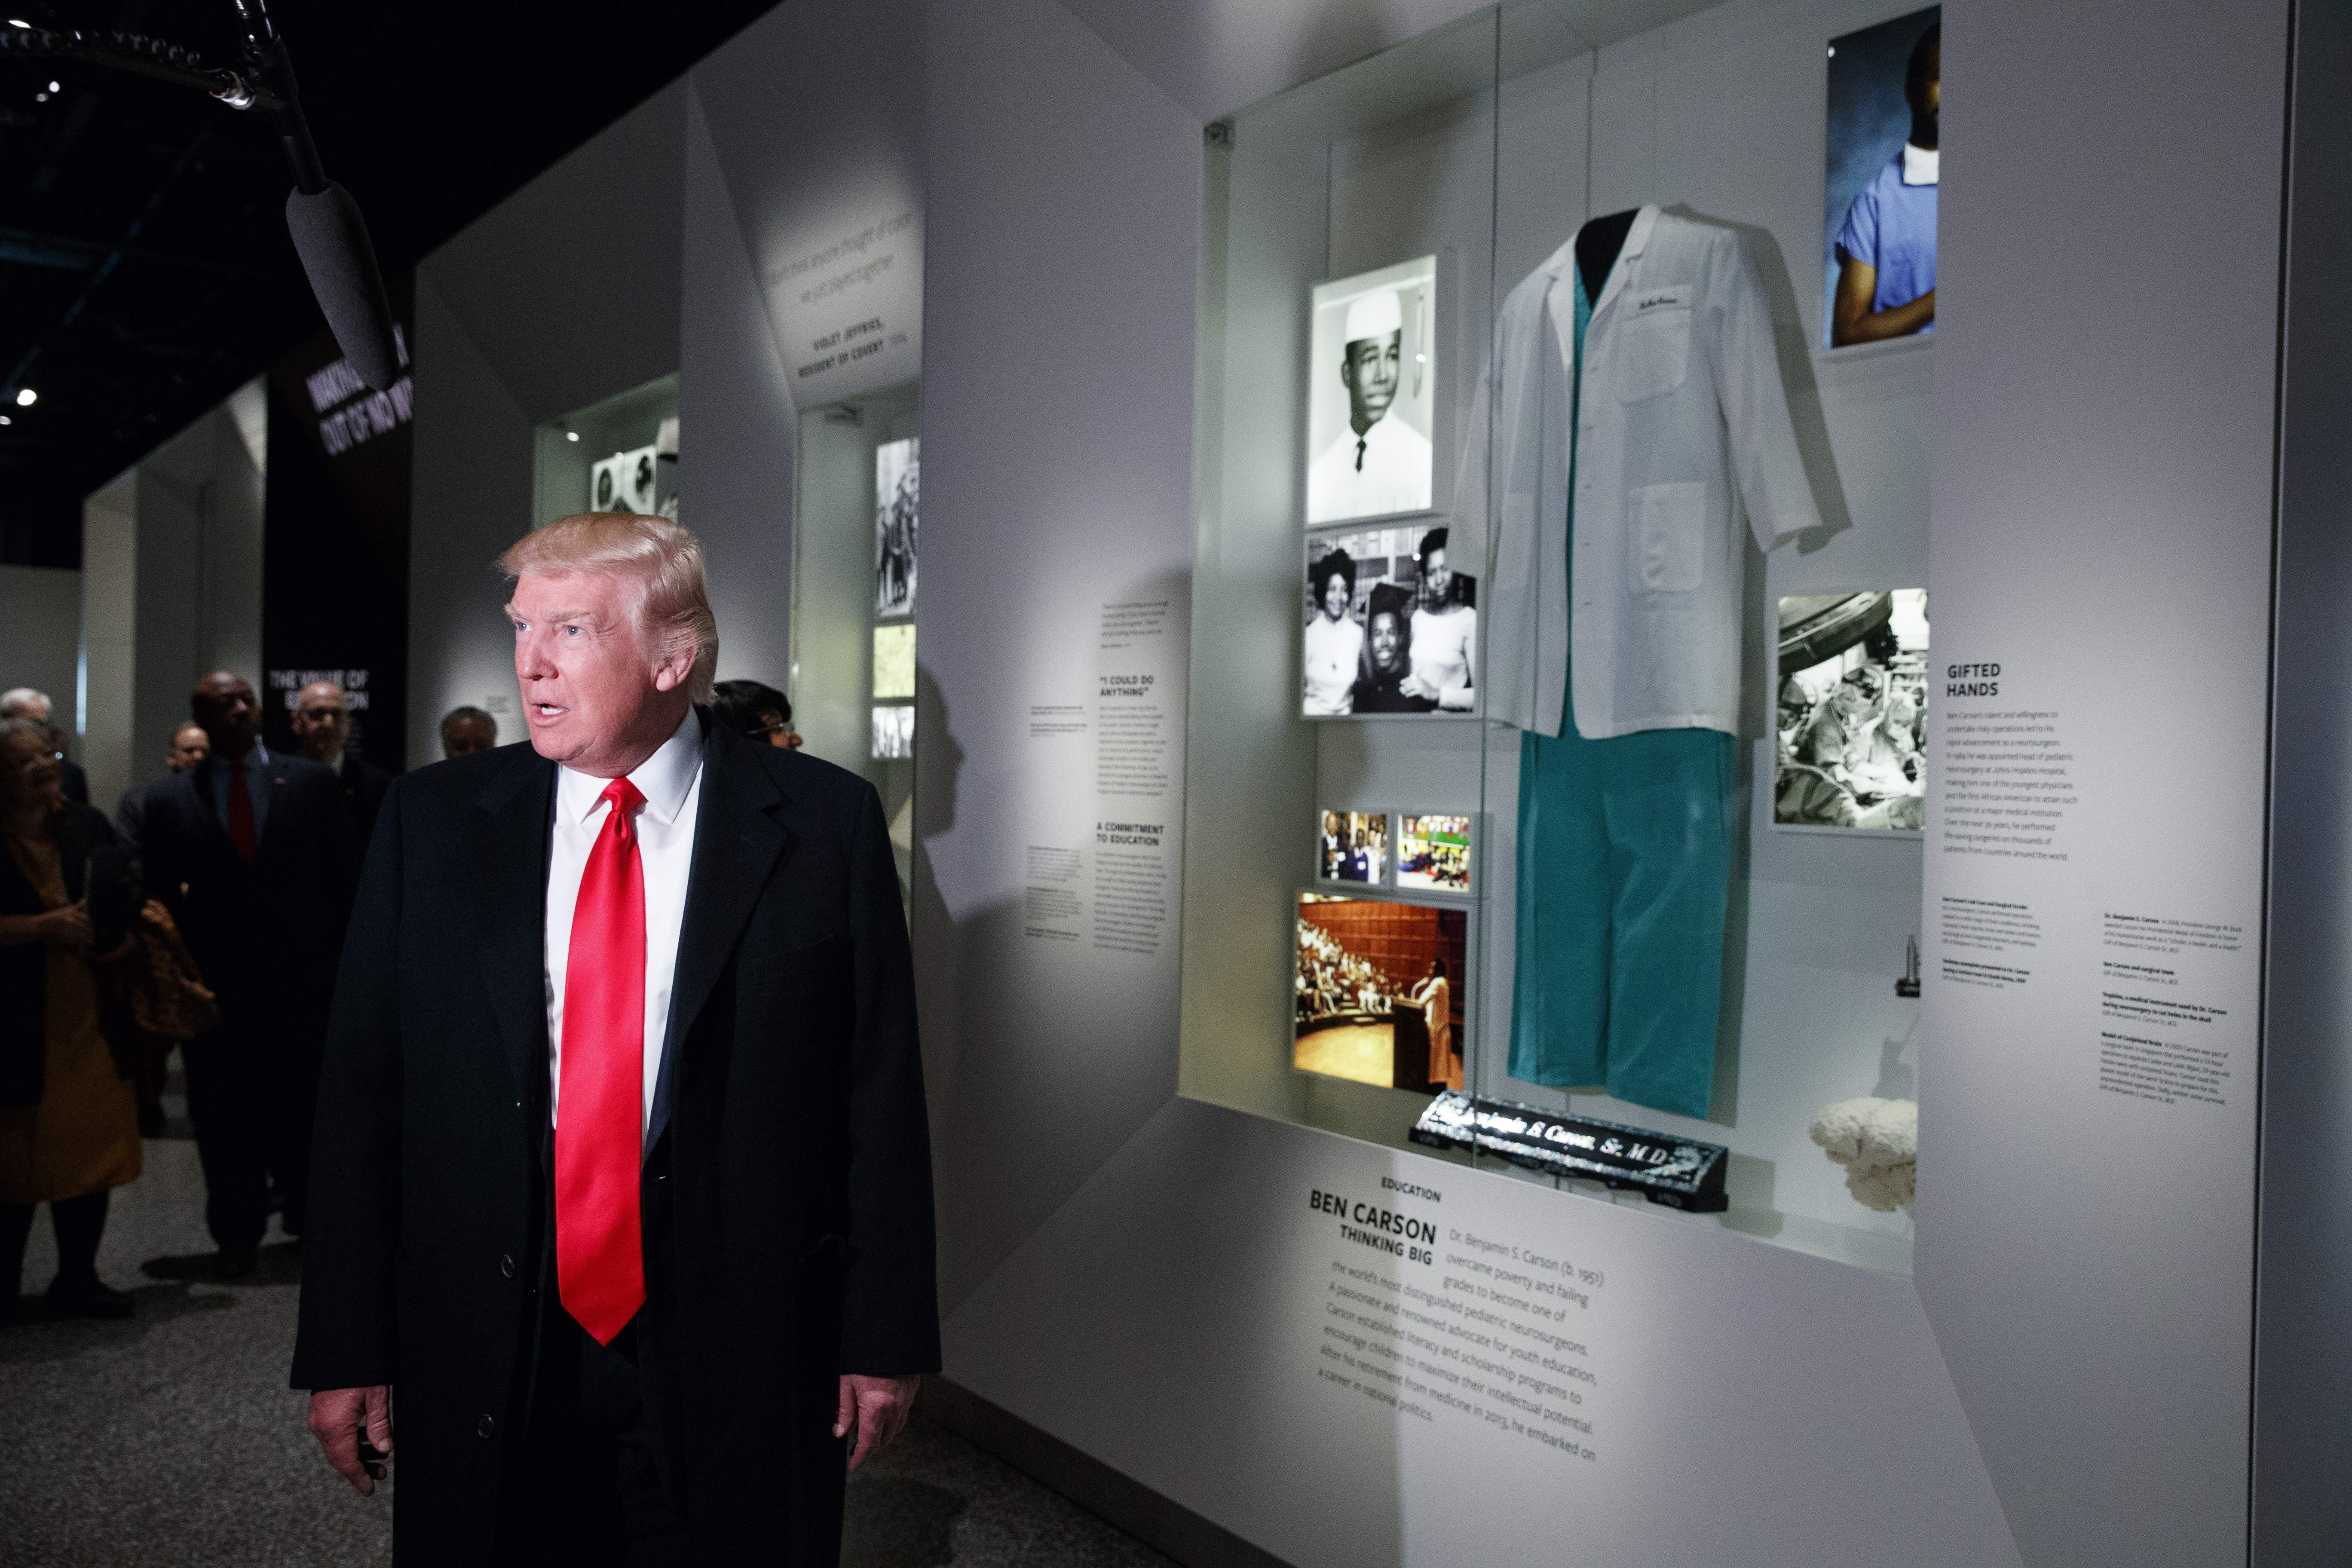 DAY 33 - In this Feb. 21, 2017, file photo, President Donald Trump talks with reporters as he stops at the exhibit for Dr. Ben Carson, his nominee for Housing and Urban Development secretary, during a tour of the National Museum of African American History and Culture in Washington. (AP Photo/Evan Vucci, File)